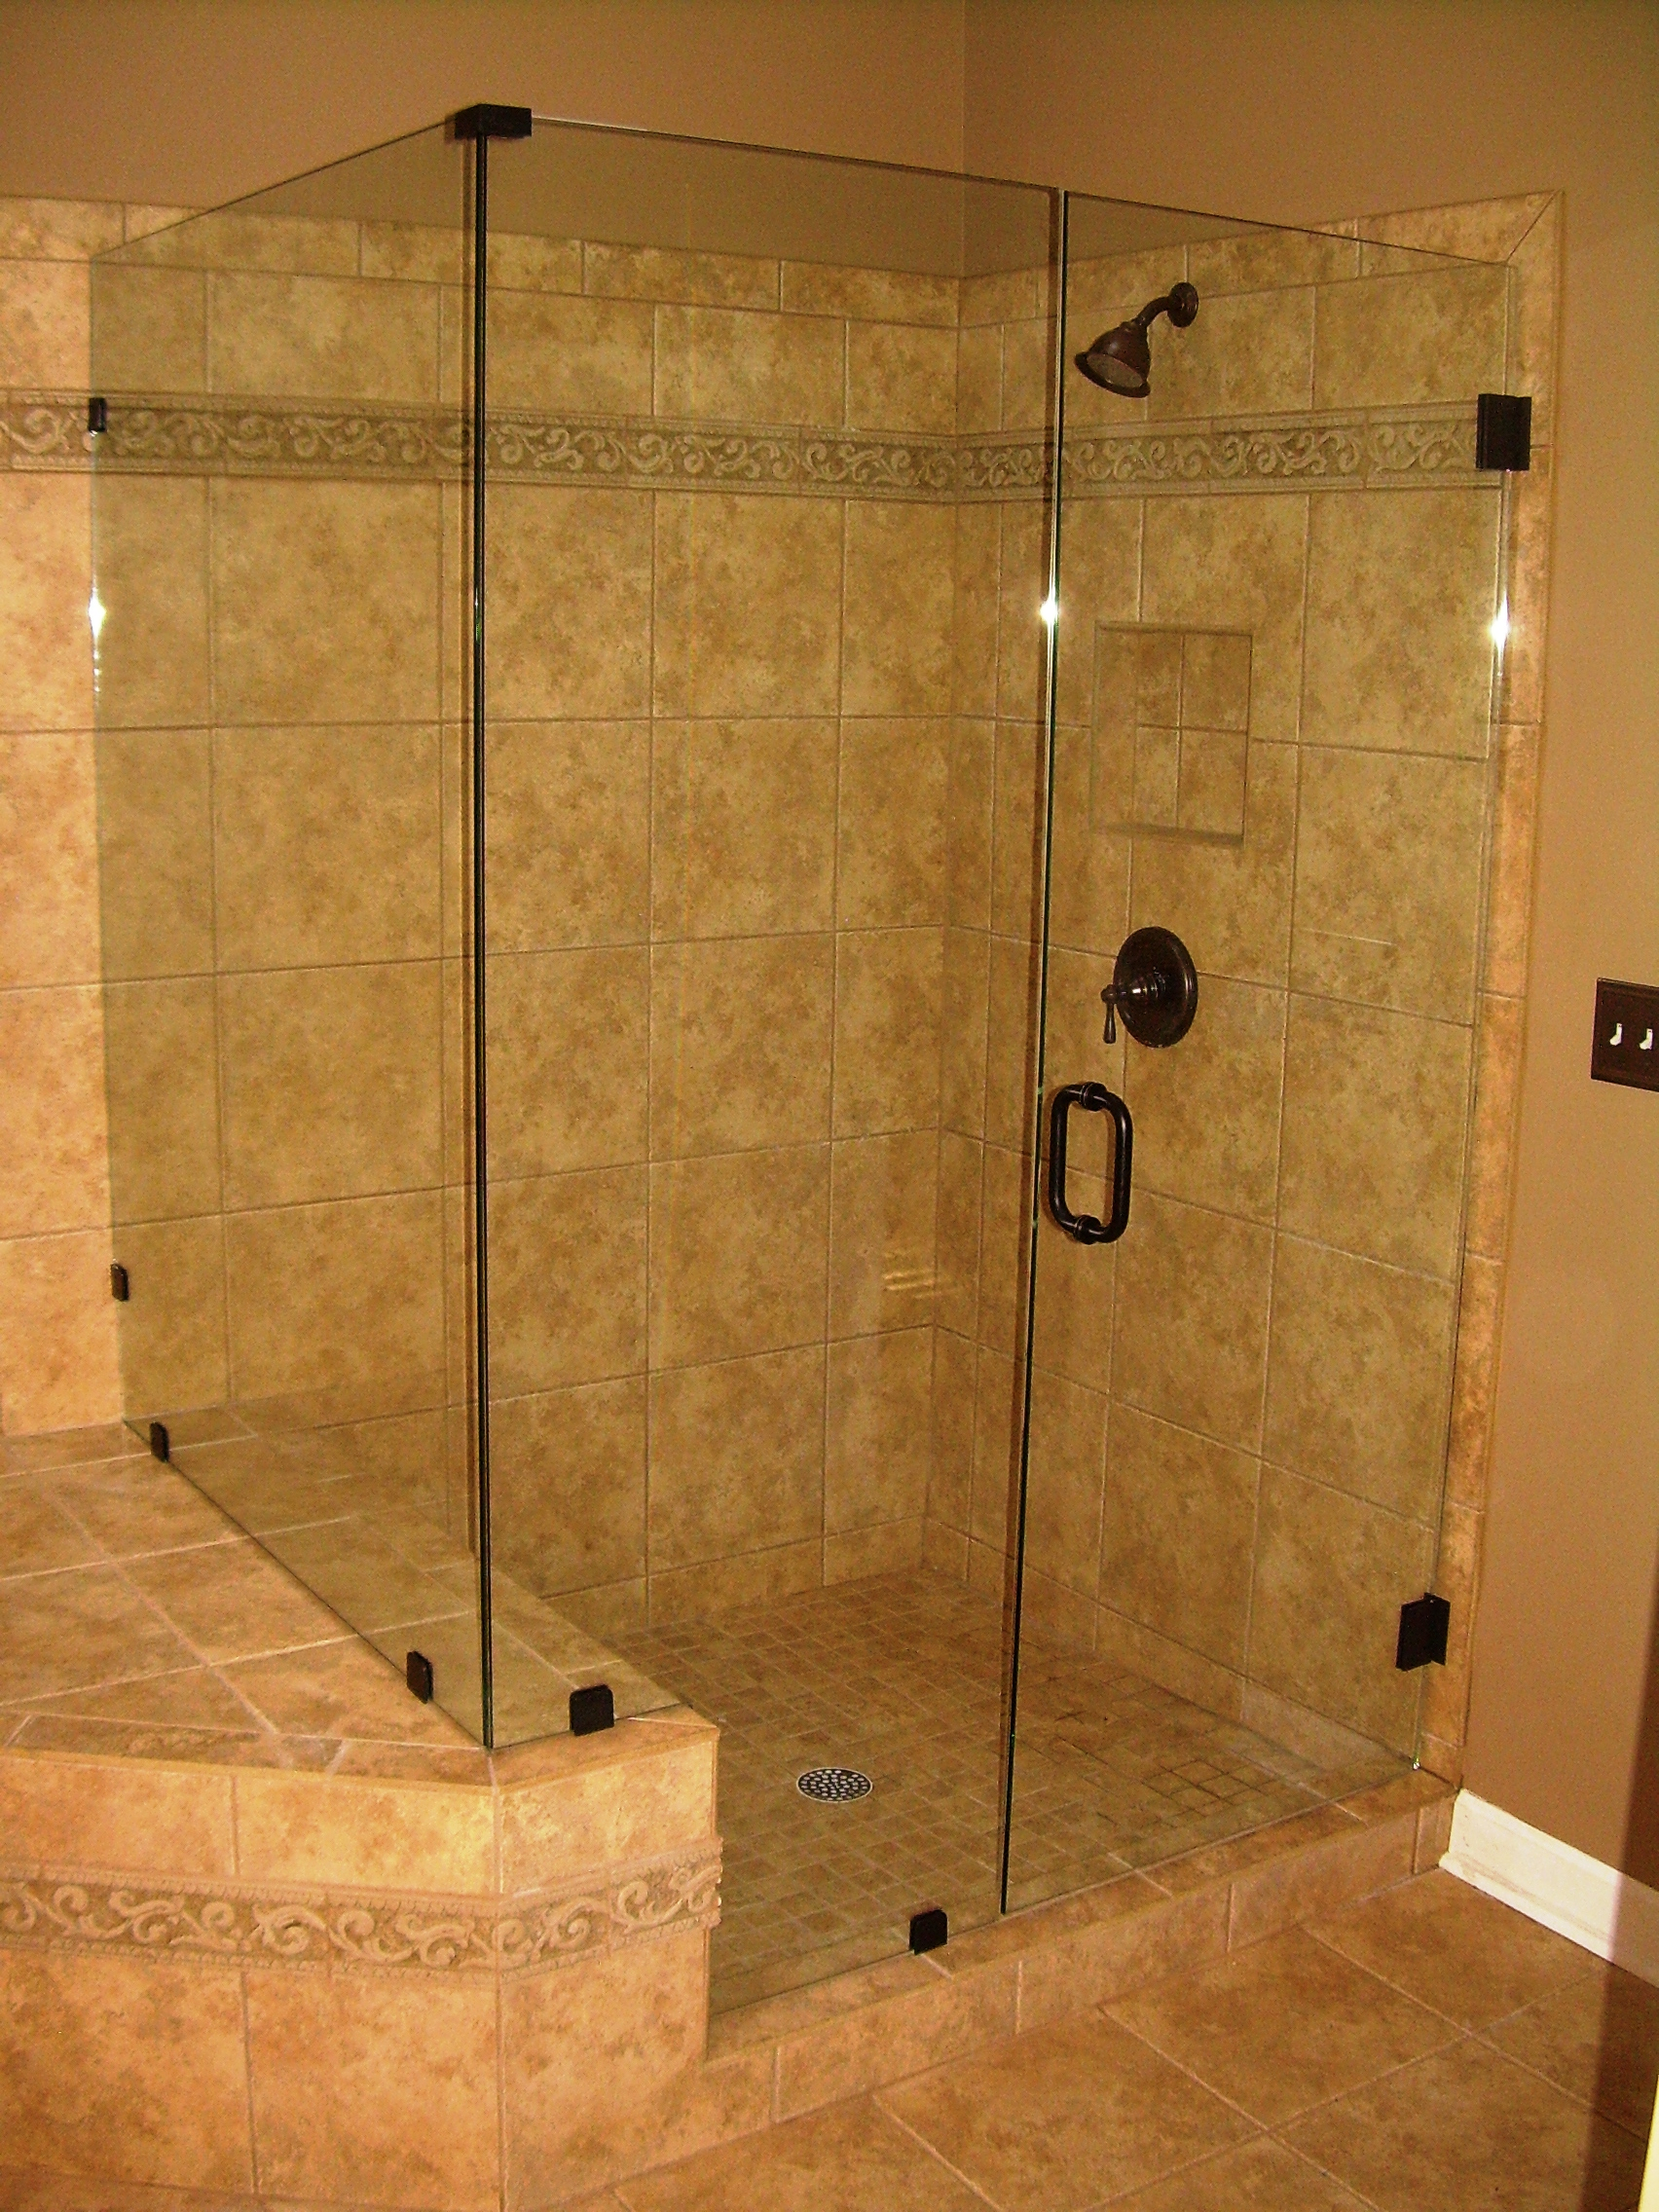 How to clean glass shower doors jenna pope writes how to clean glass shower doors frameless shower enclosures design decorating 101 planetlyrics